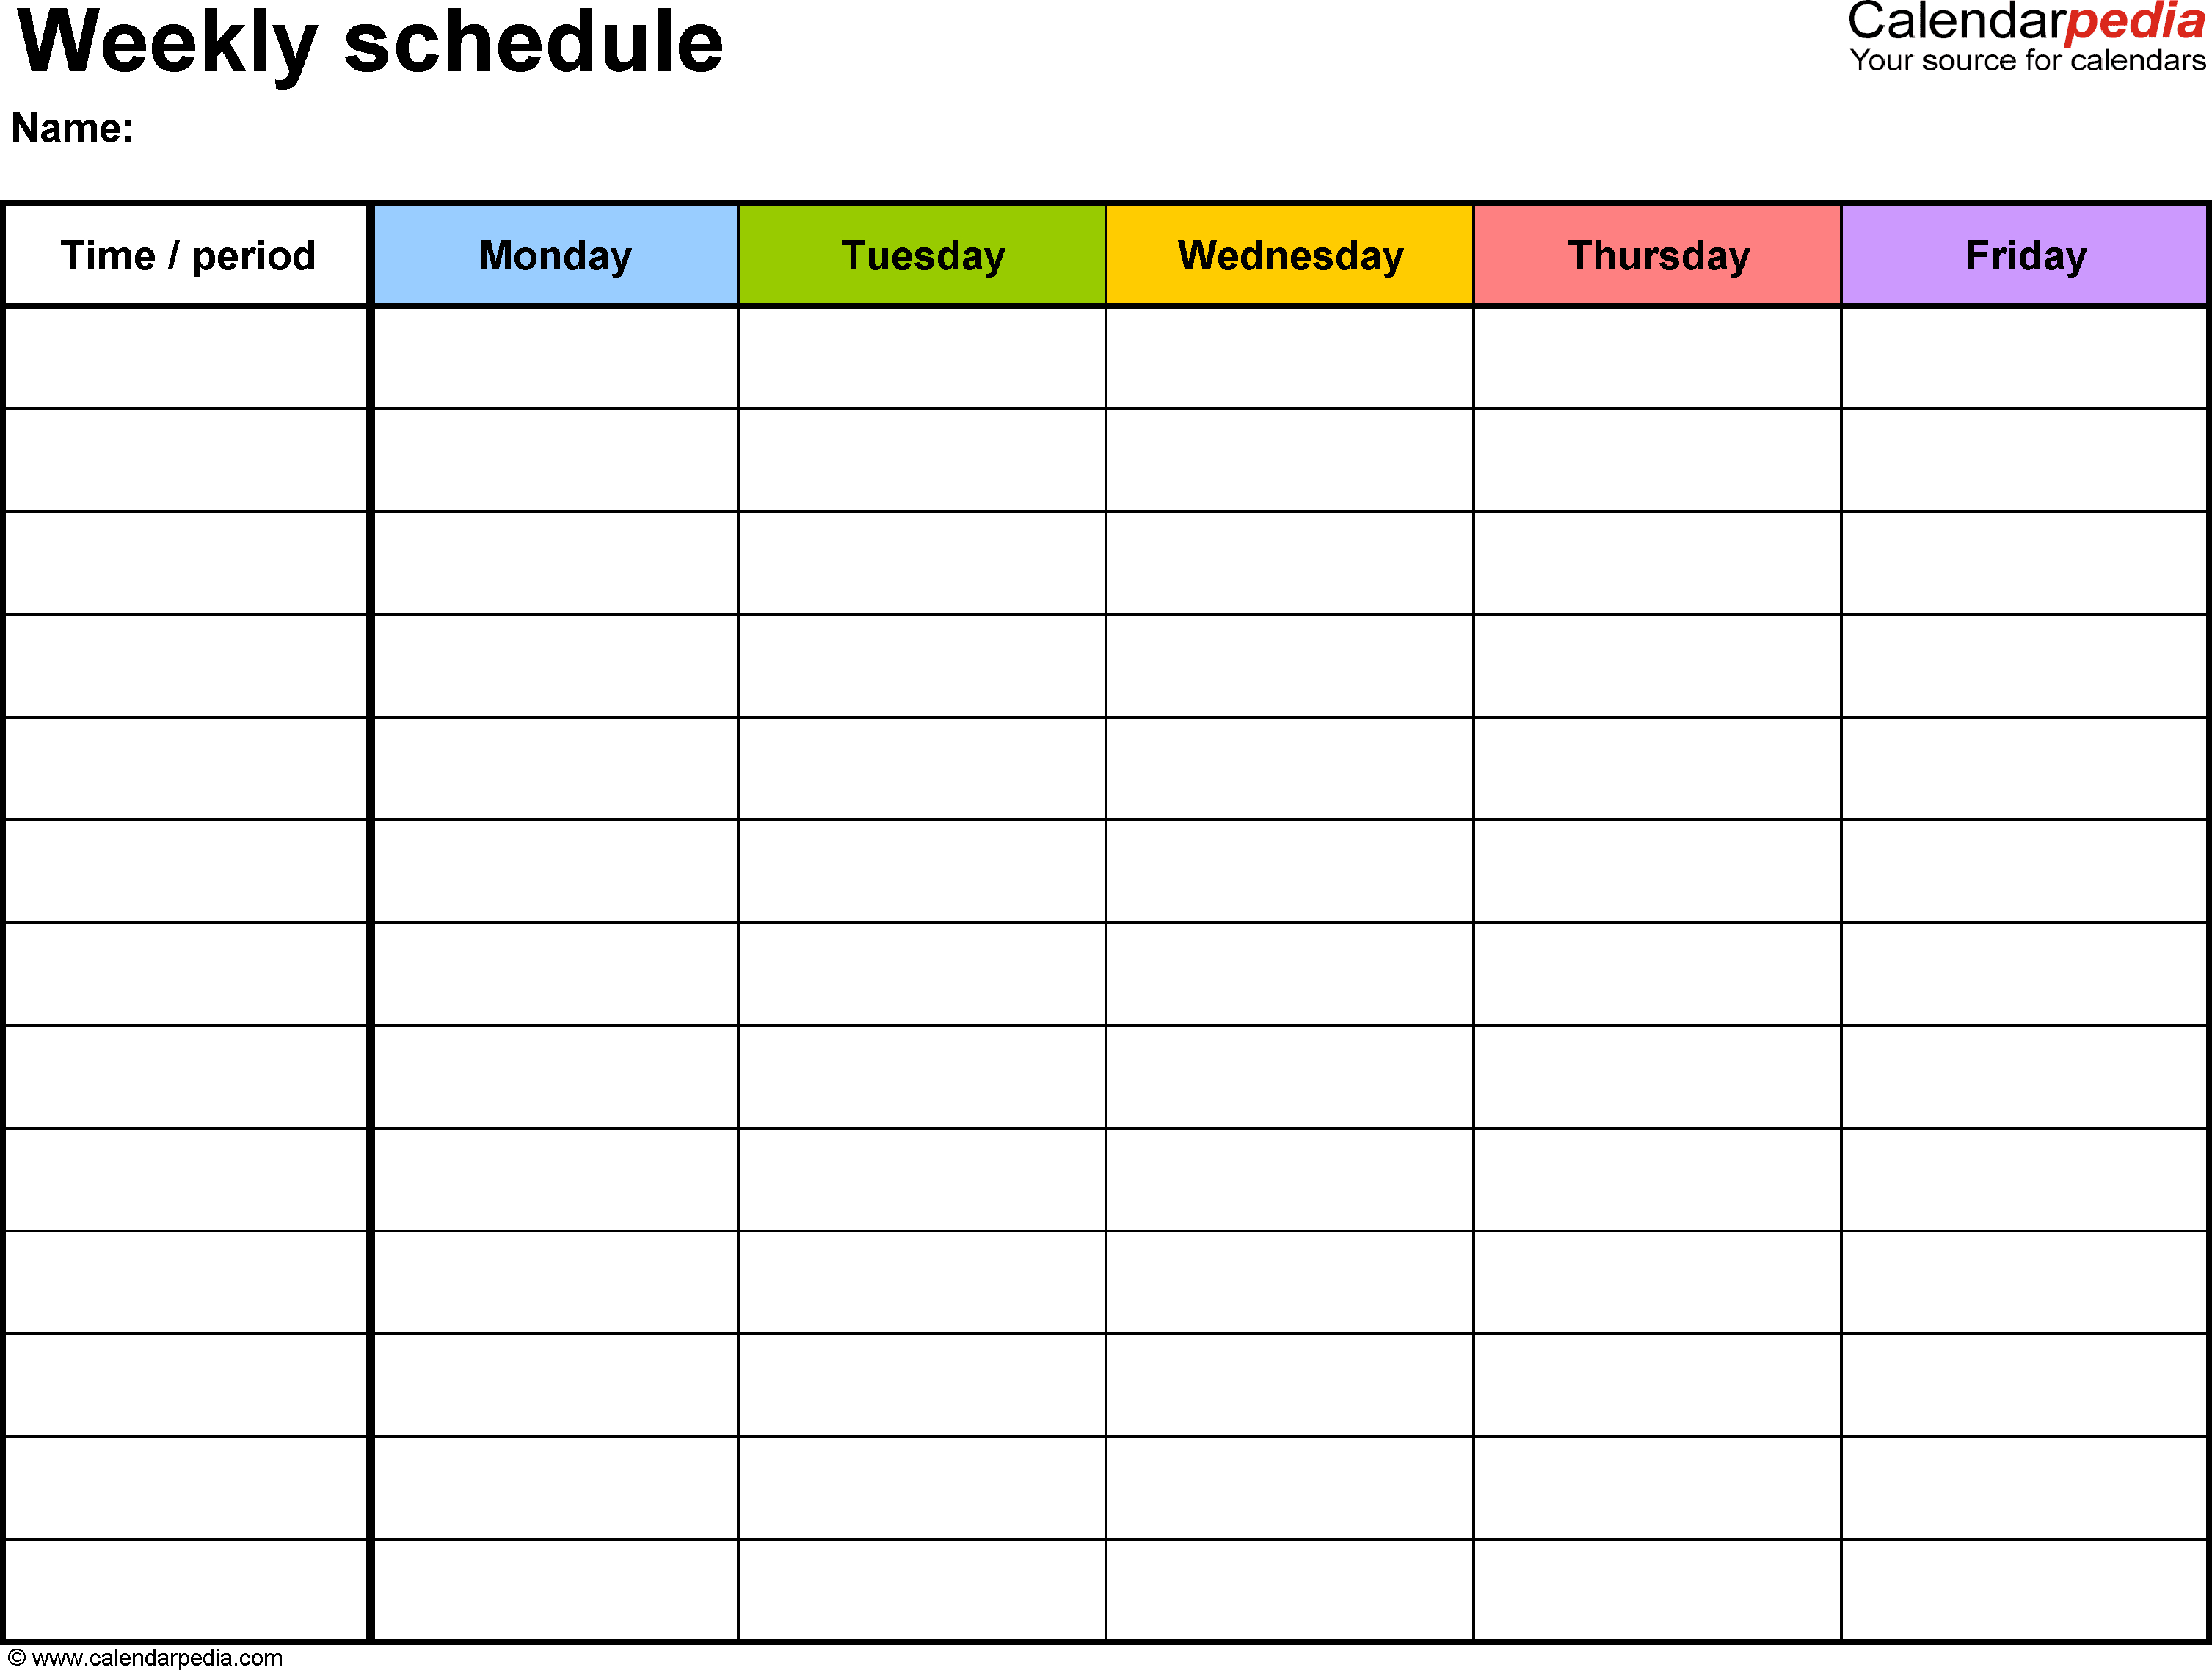 Weekly Schedule Template For Pdf Version 1: Landscape, 1 Monday To Friday Schedule Template